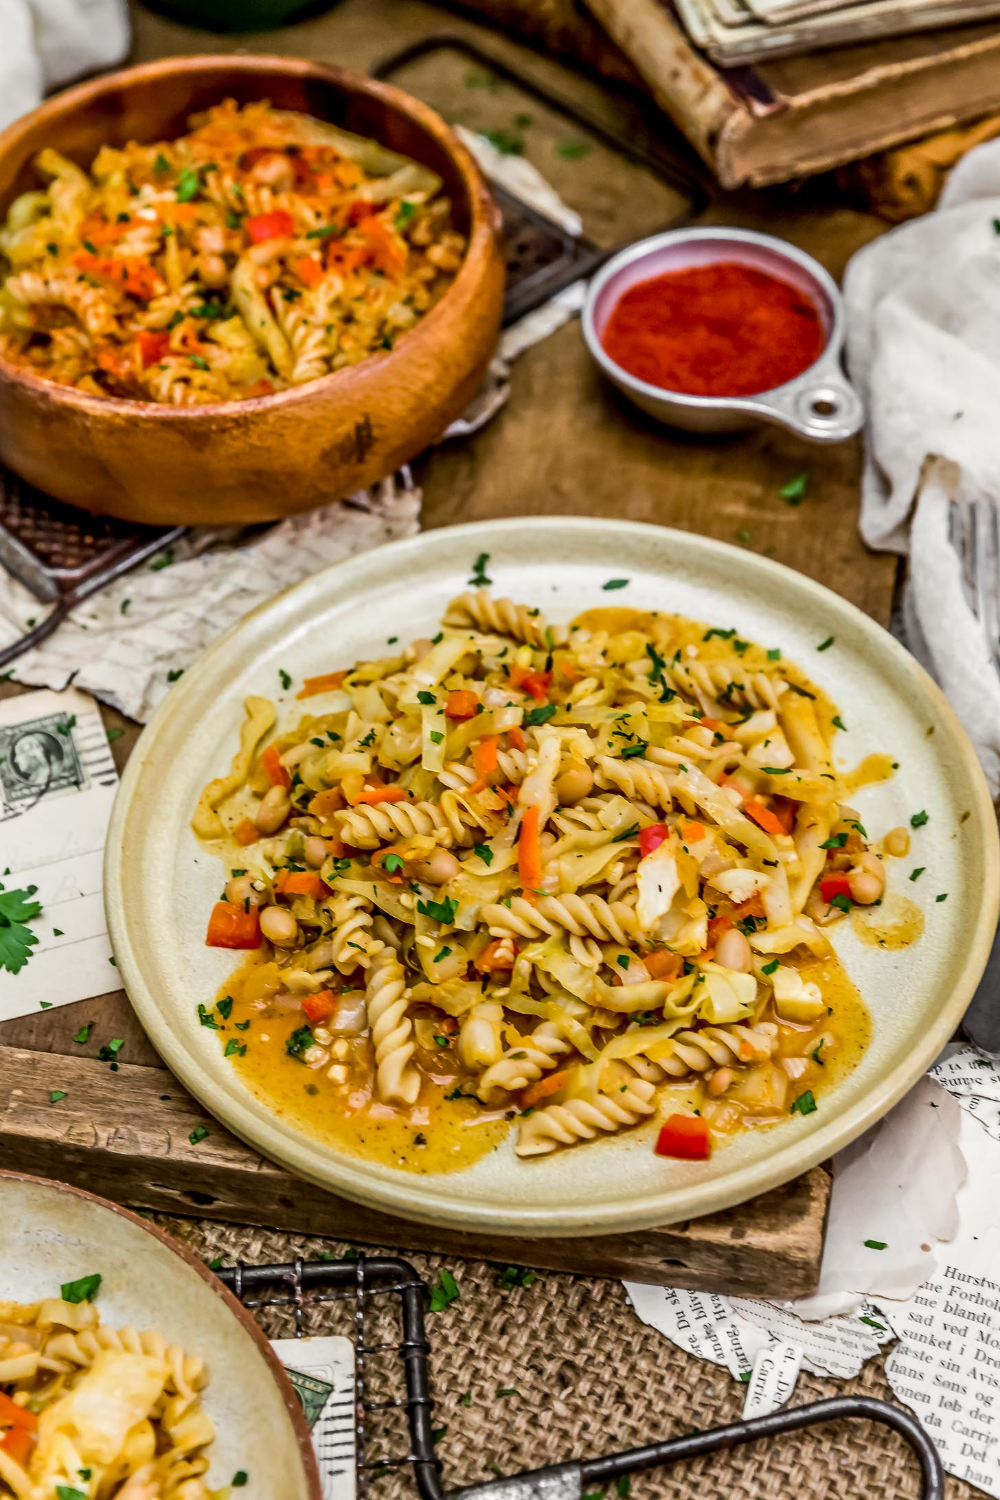 vegan hungarian cabbage and noodles monkey and me kitchen adventures recipe cabbage and noodles whole food recipes vegetarian vegan recipes pinterest